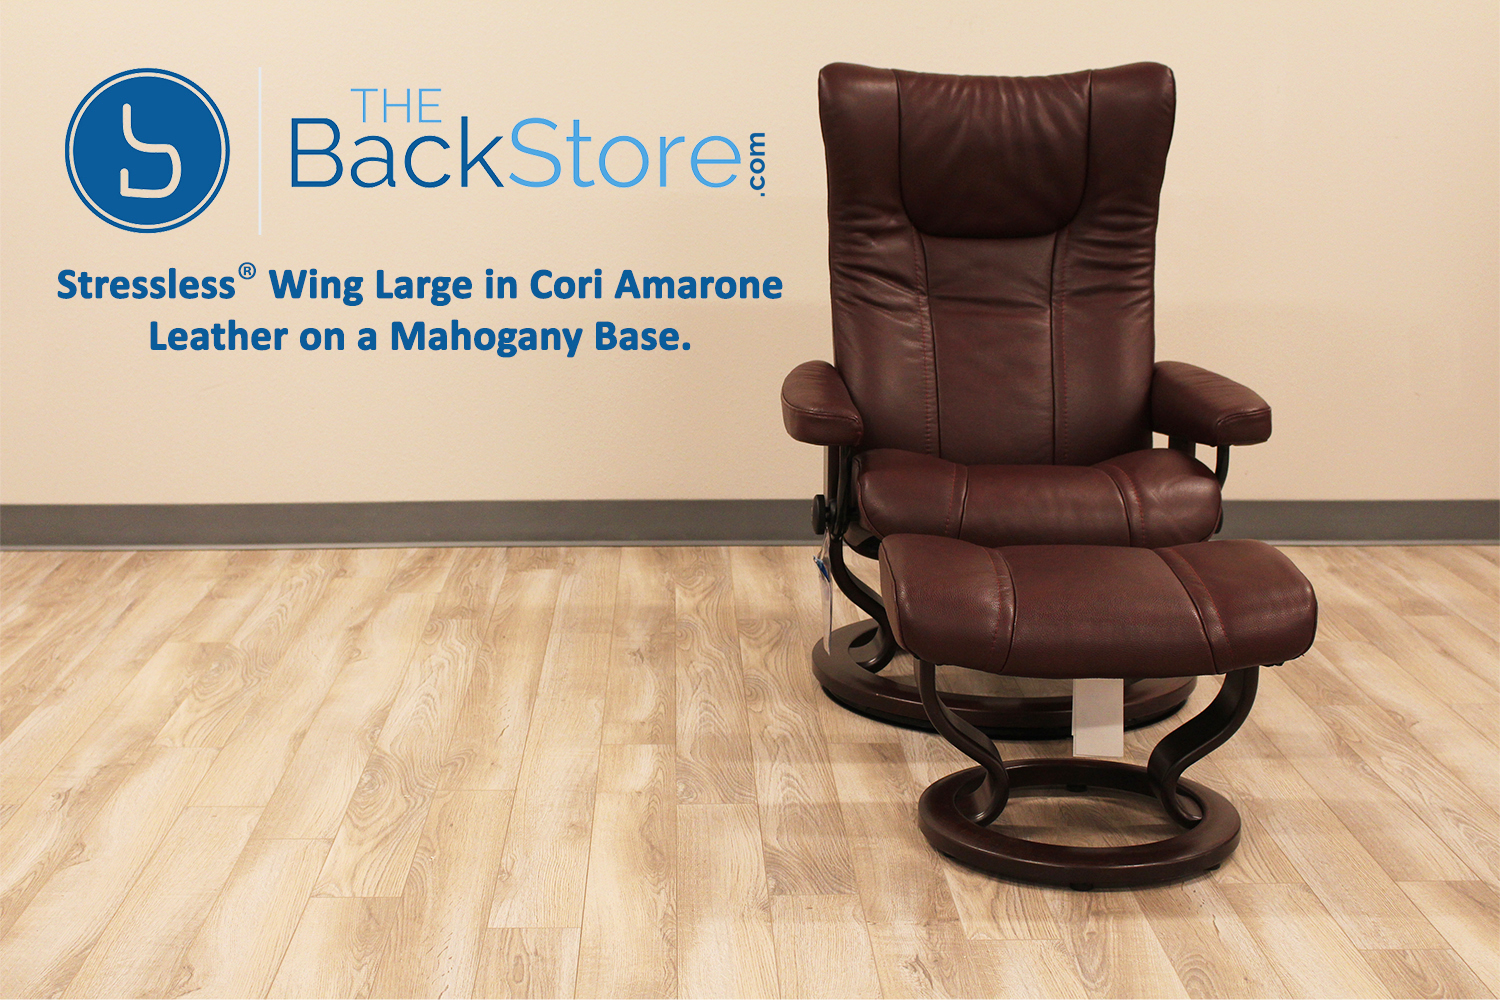 stressless wing medium cori amarone leather recliner chair and